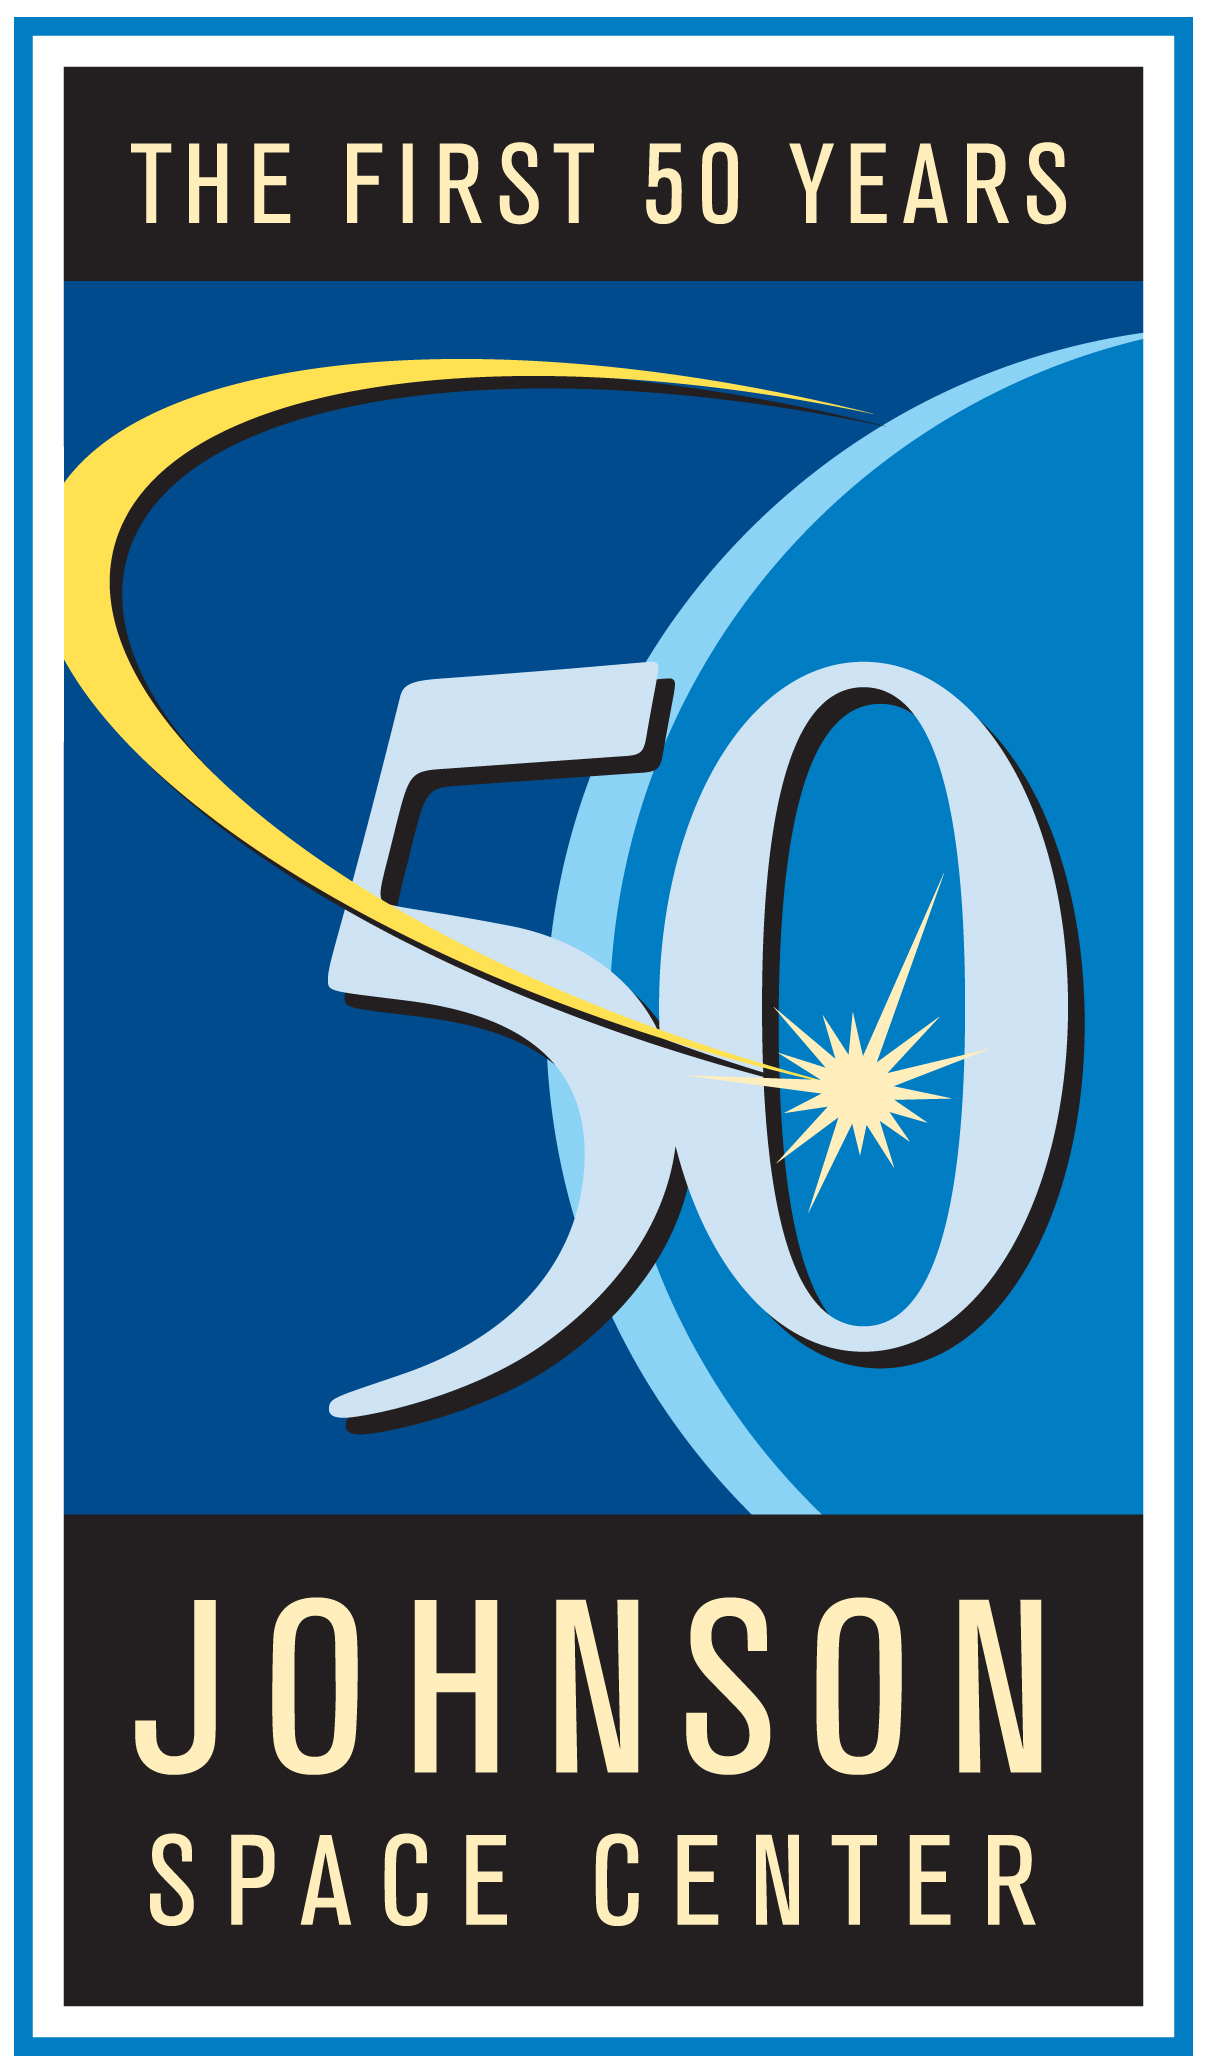 NASA - Johnson Space Center 50th Anniversary - Sept. 19, 2011